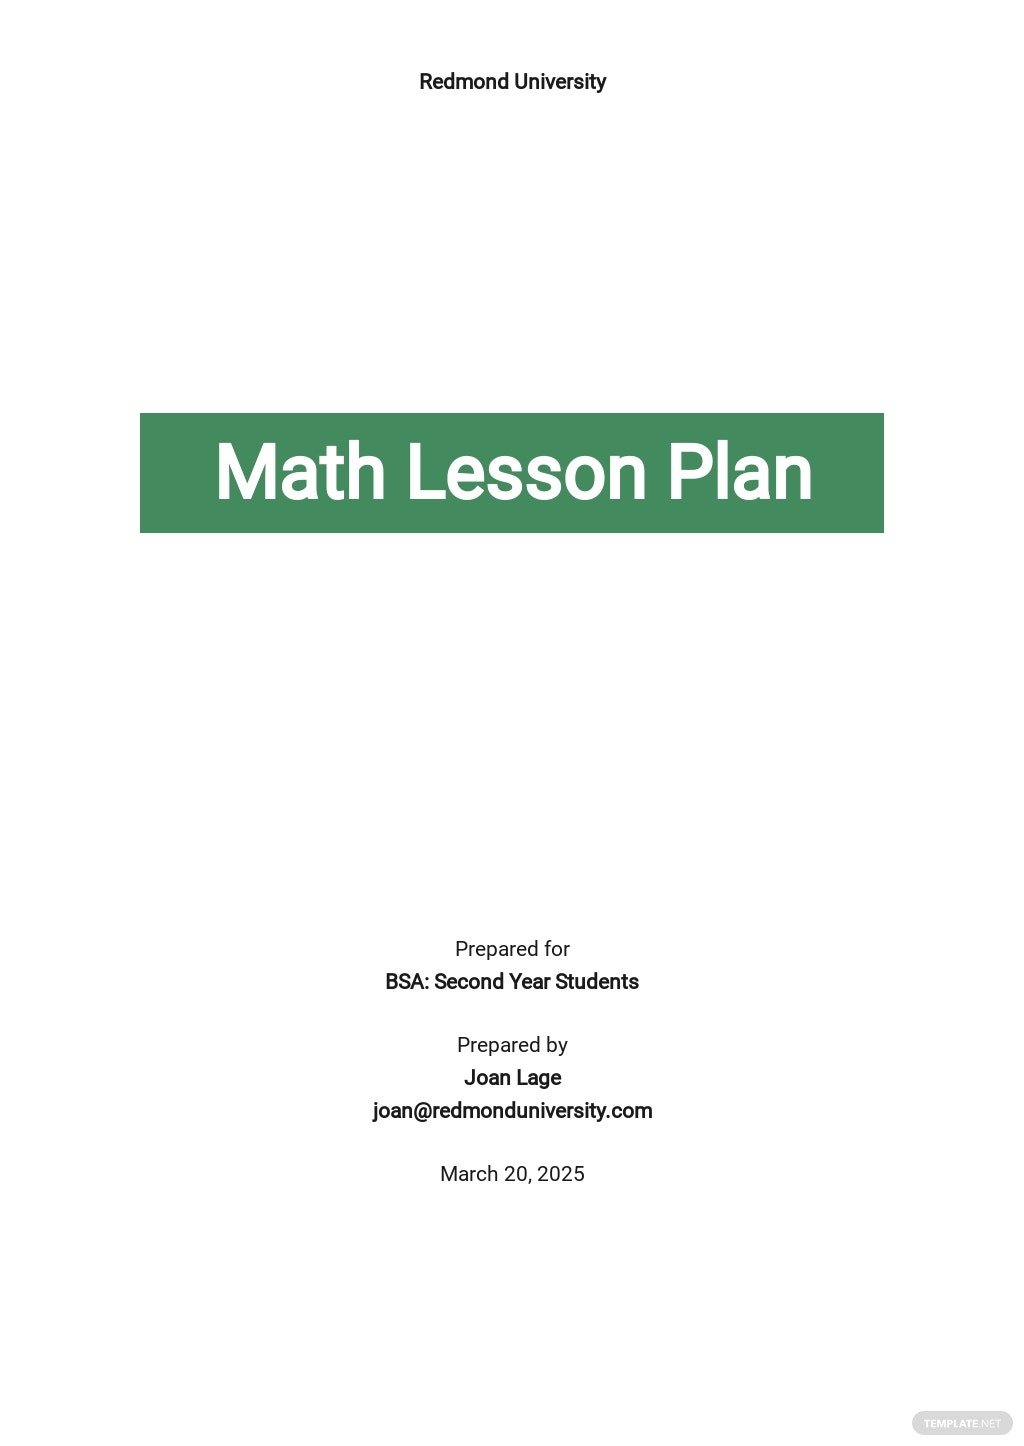 Math lesson Plan Template.jpe